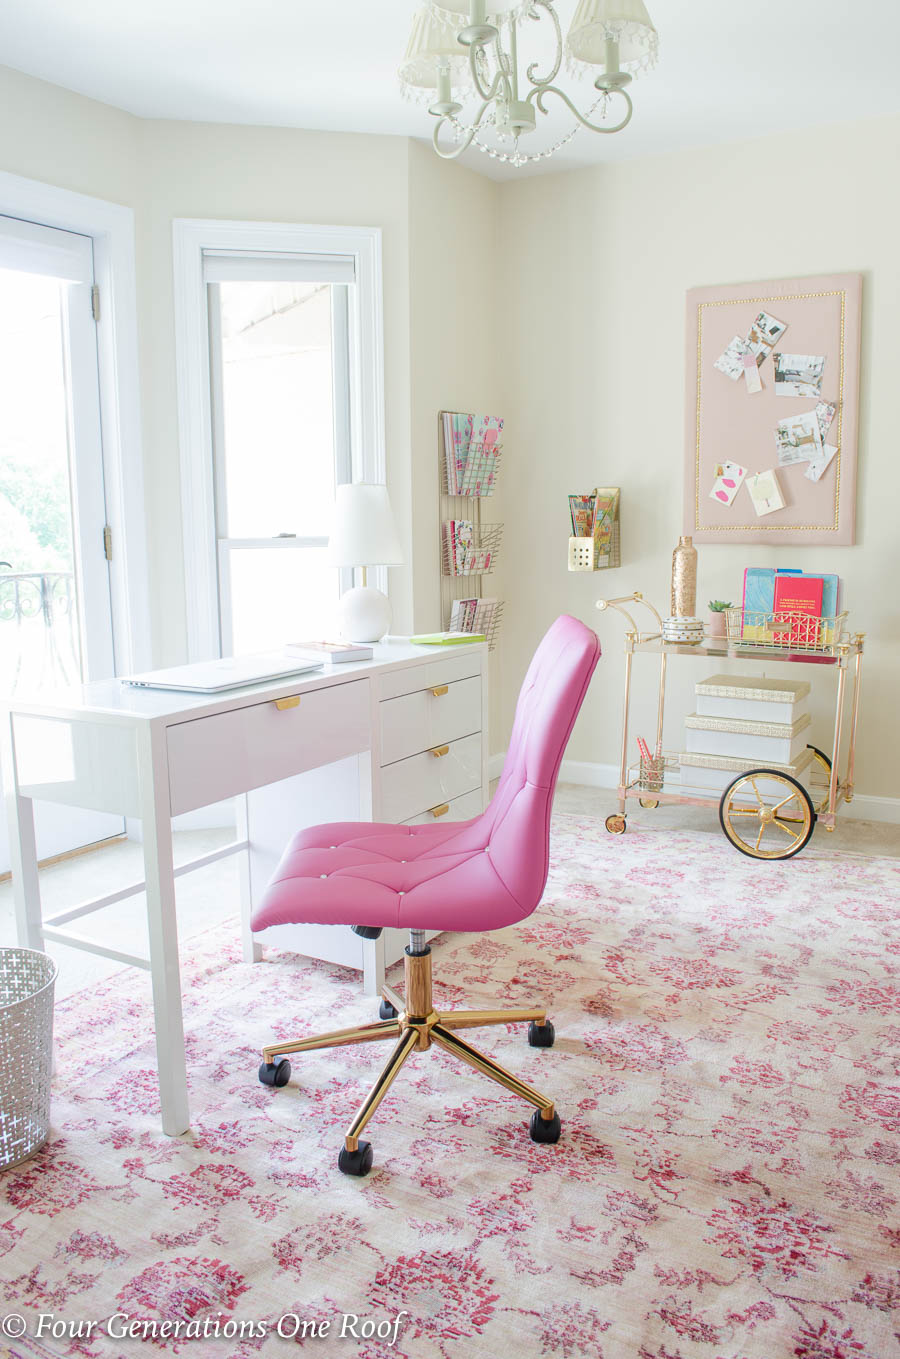 Sophisticated Adult Pink + Gold Glamorous Workspace  featuring a white and gold glass desk, pink studded office chair, pink rug, gold and blush glass bar cart for office storage, hanging wall pin board for storage and hanging letter holders and wire organization rack. #officestorage #pinkoffice #organizational #officemakeover #desk #pinkchair #officefurniture